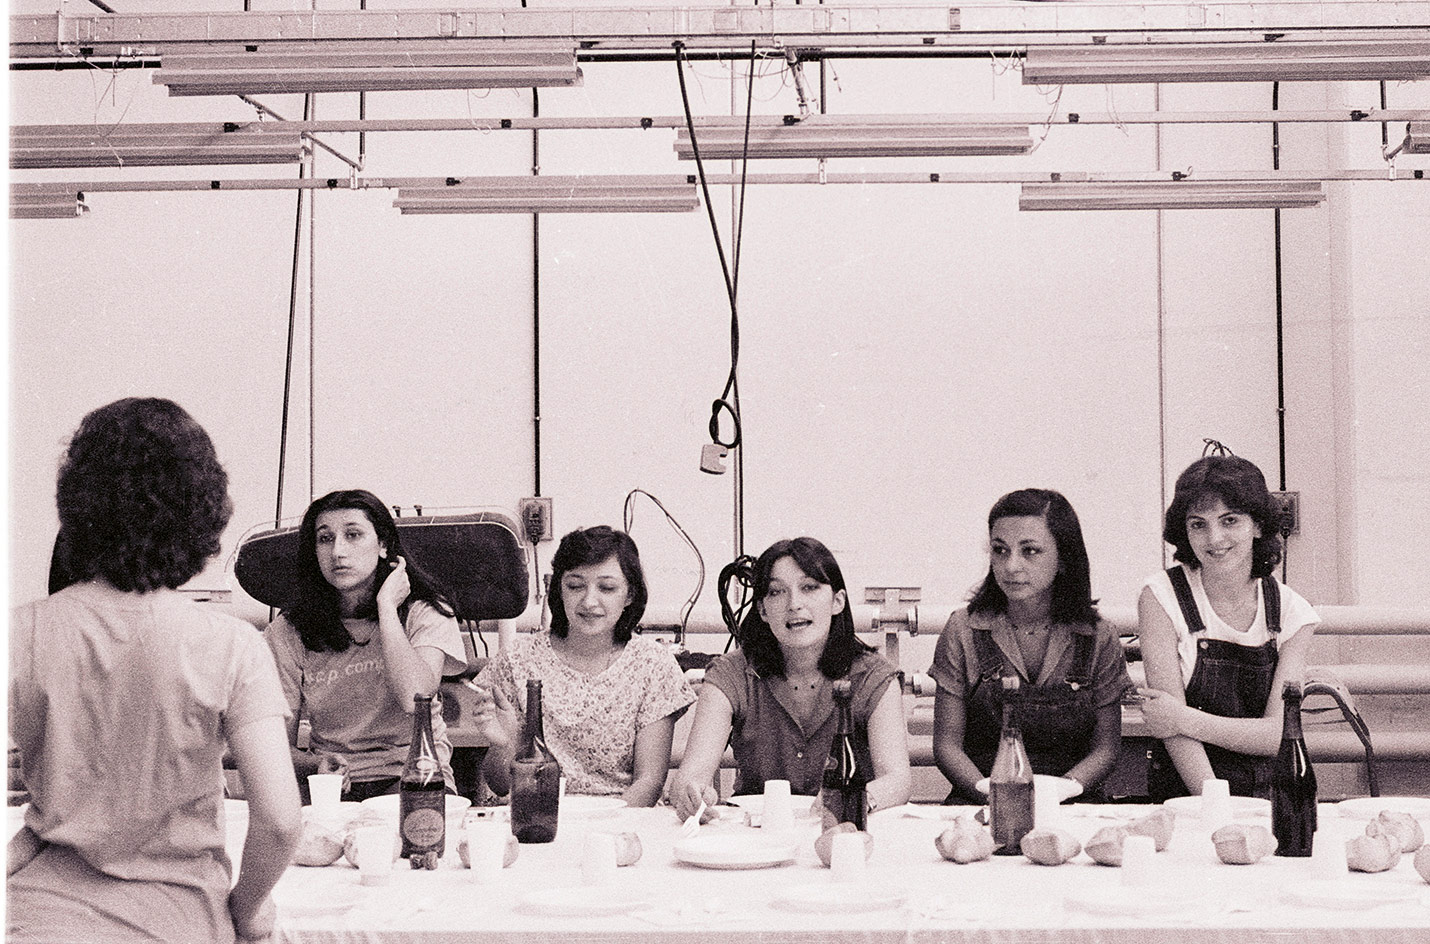 Photograph of female workers sitting in the CP Company factory